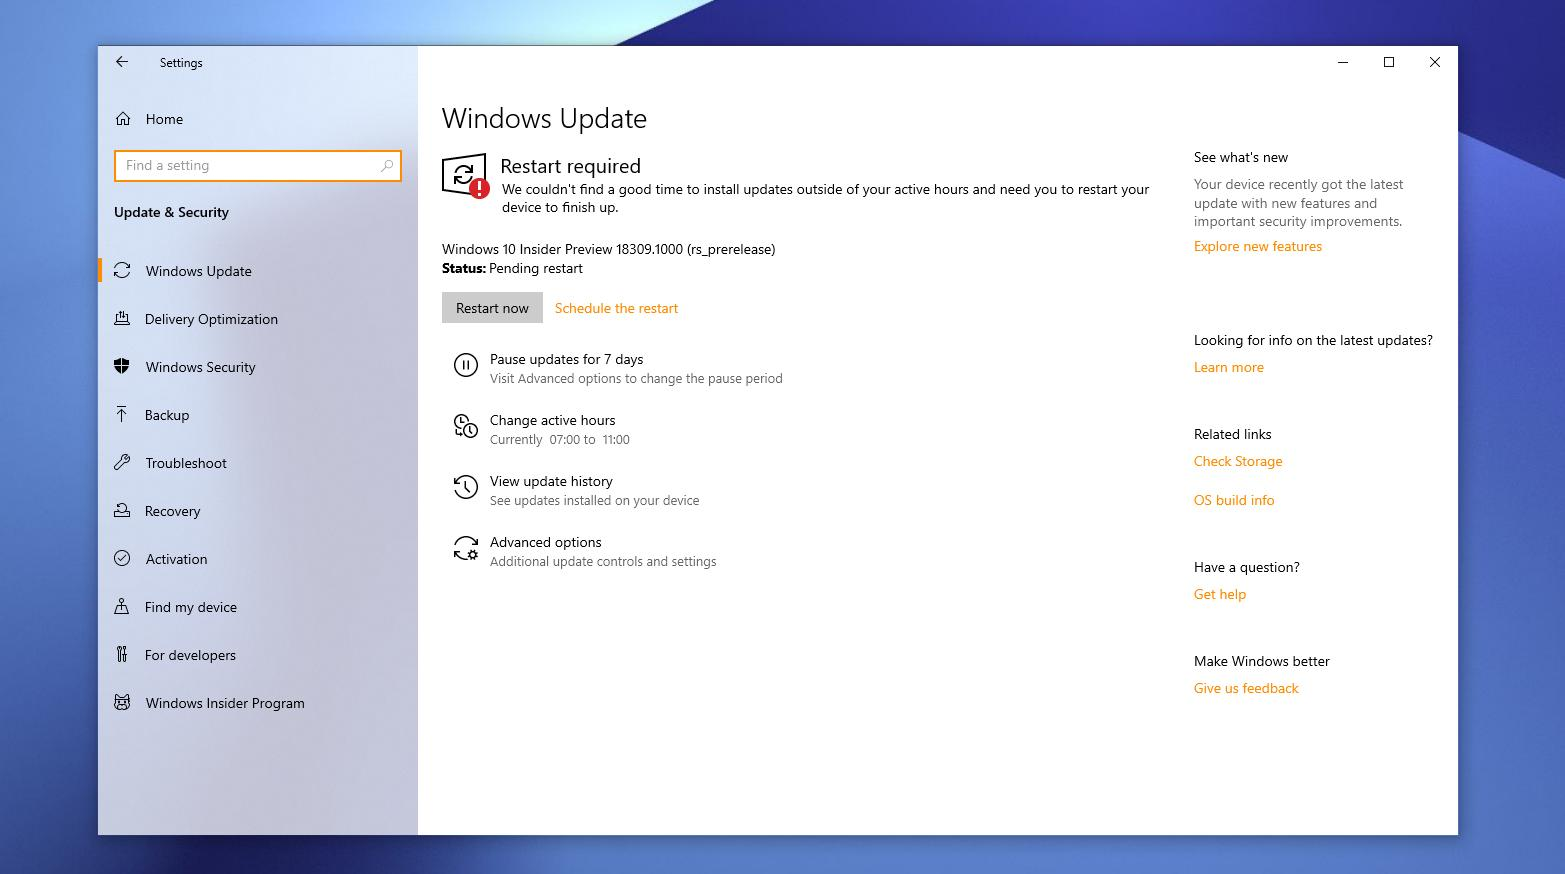 This new build is available for Fast ring insiders